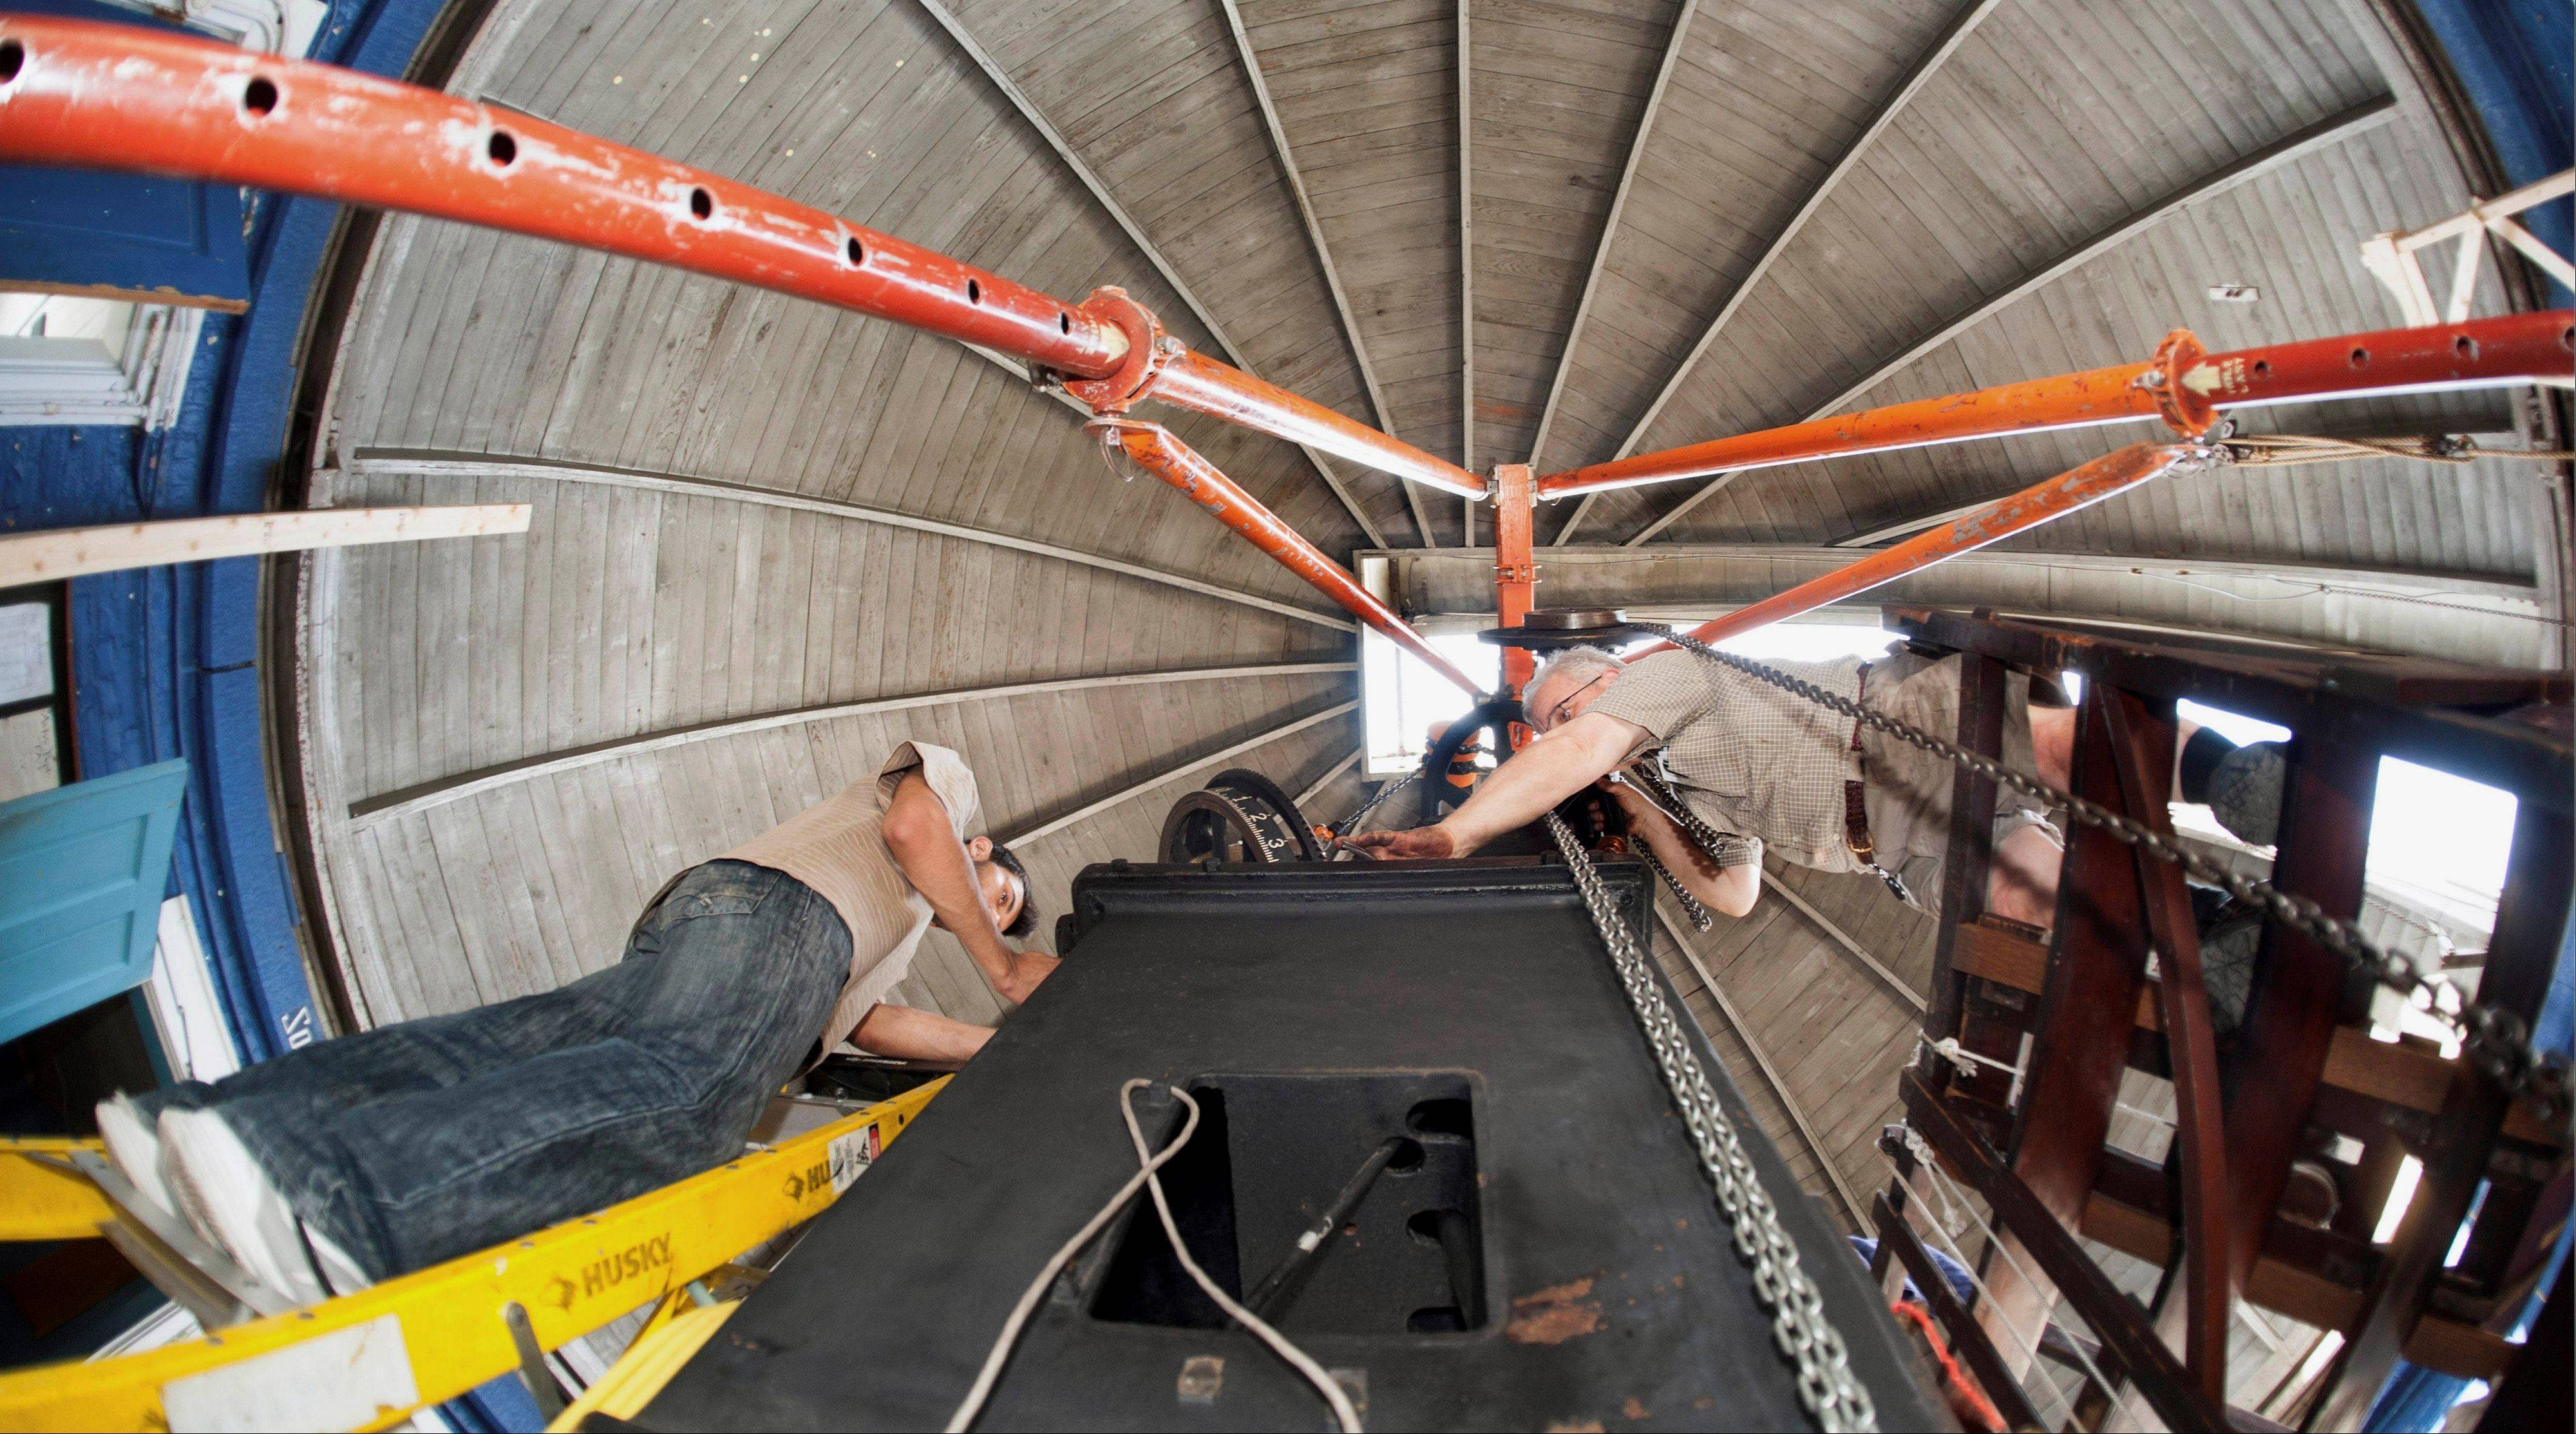 Swarthmore engineering sophomore Yousef Alhessi, left, and Fred Orthlieb, emeritus professor of mechanical engineering at Swarthmore, work on taking apart the historic 117-year-old telescope at University of Illinois observatory.